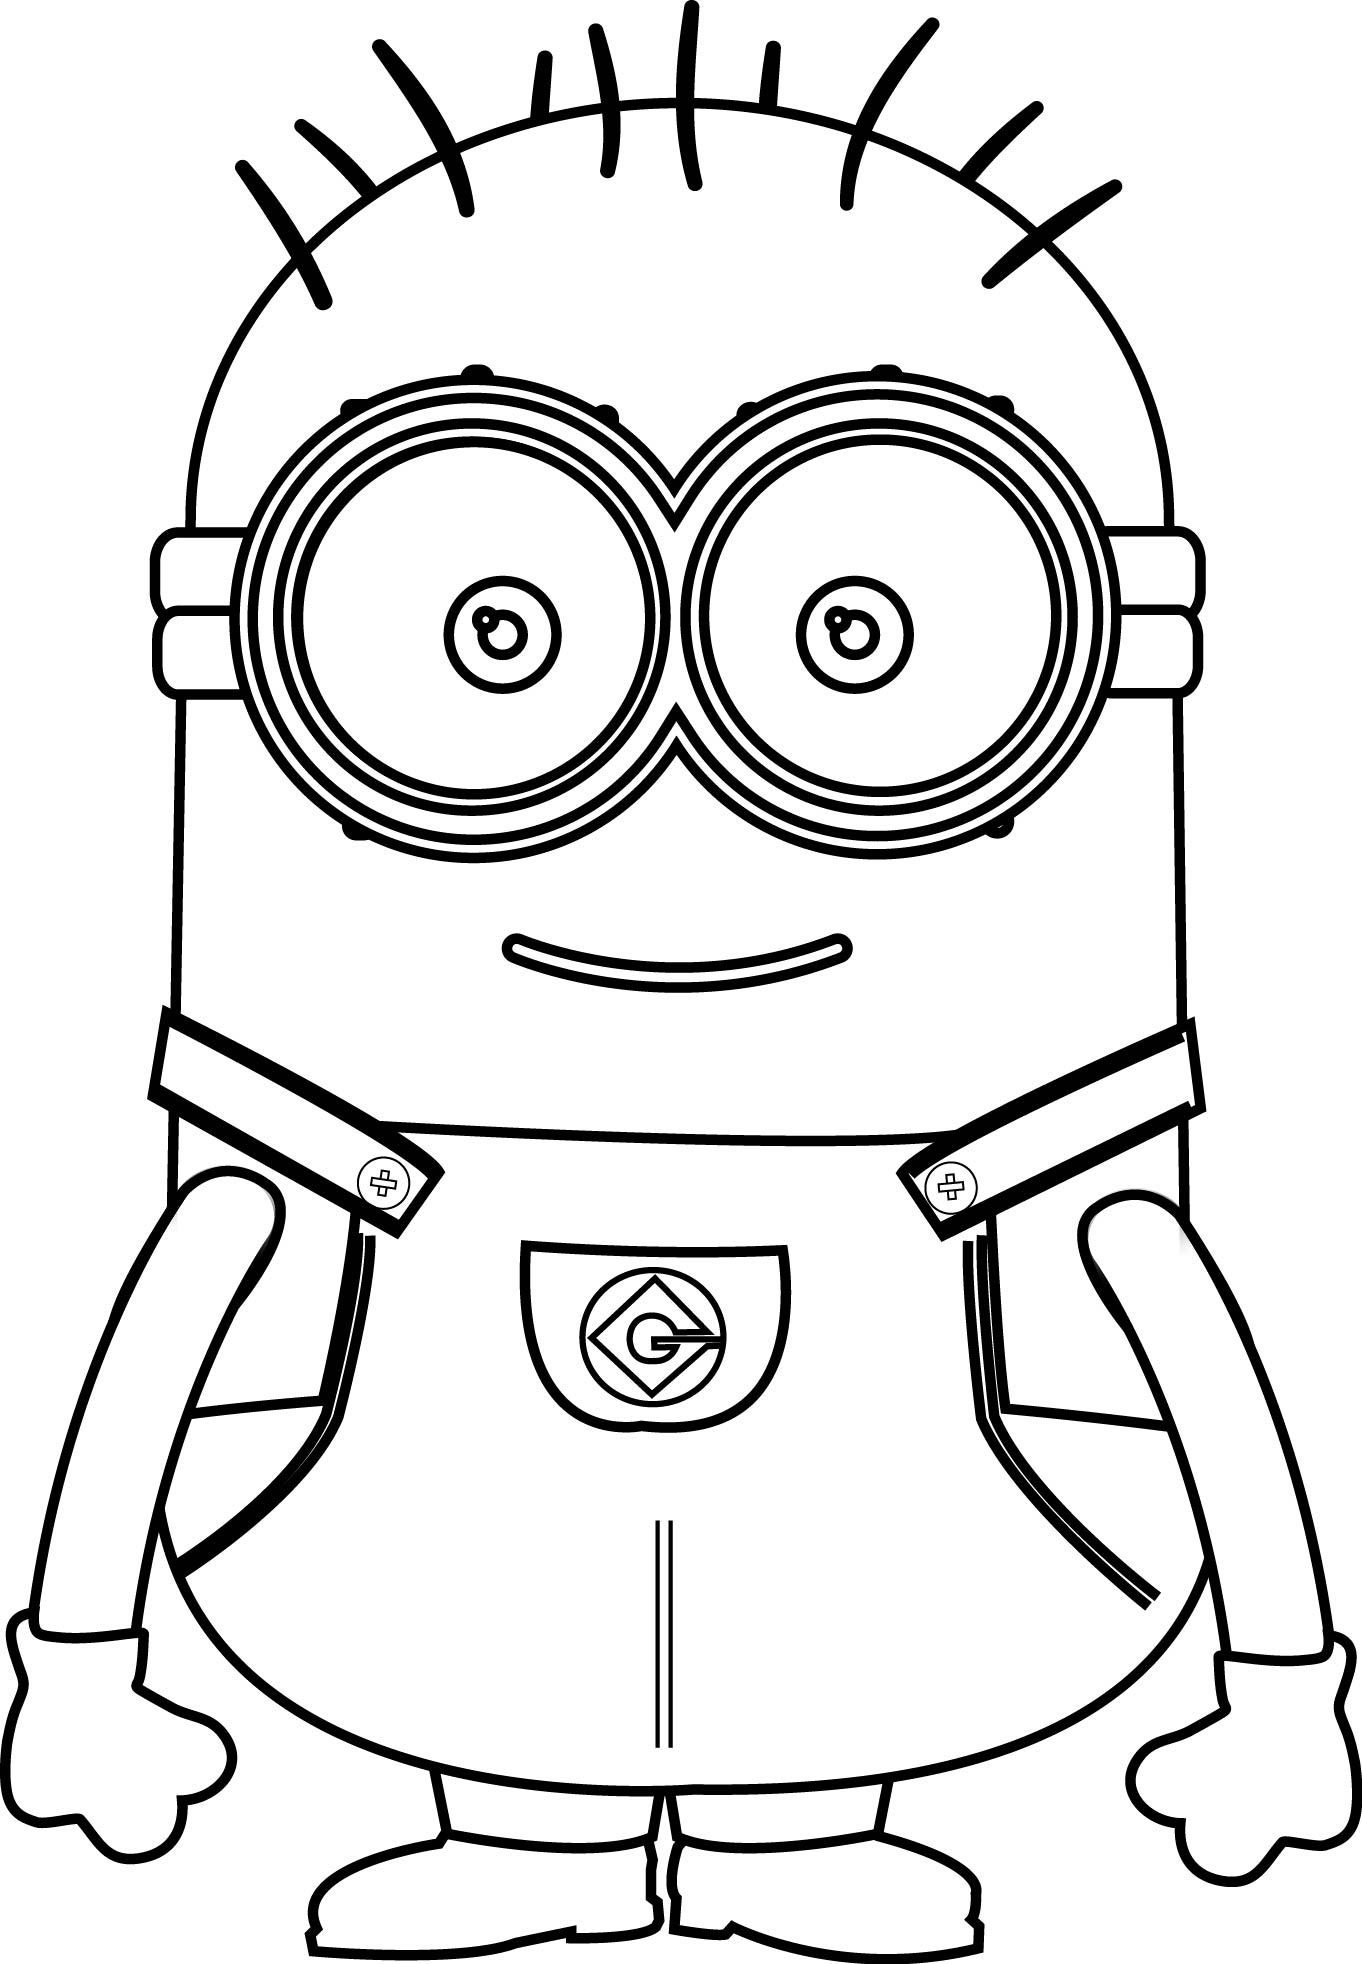 Happy Holidays Minion Coloring Pages Happy Best Free